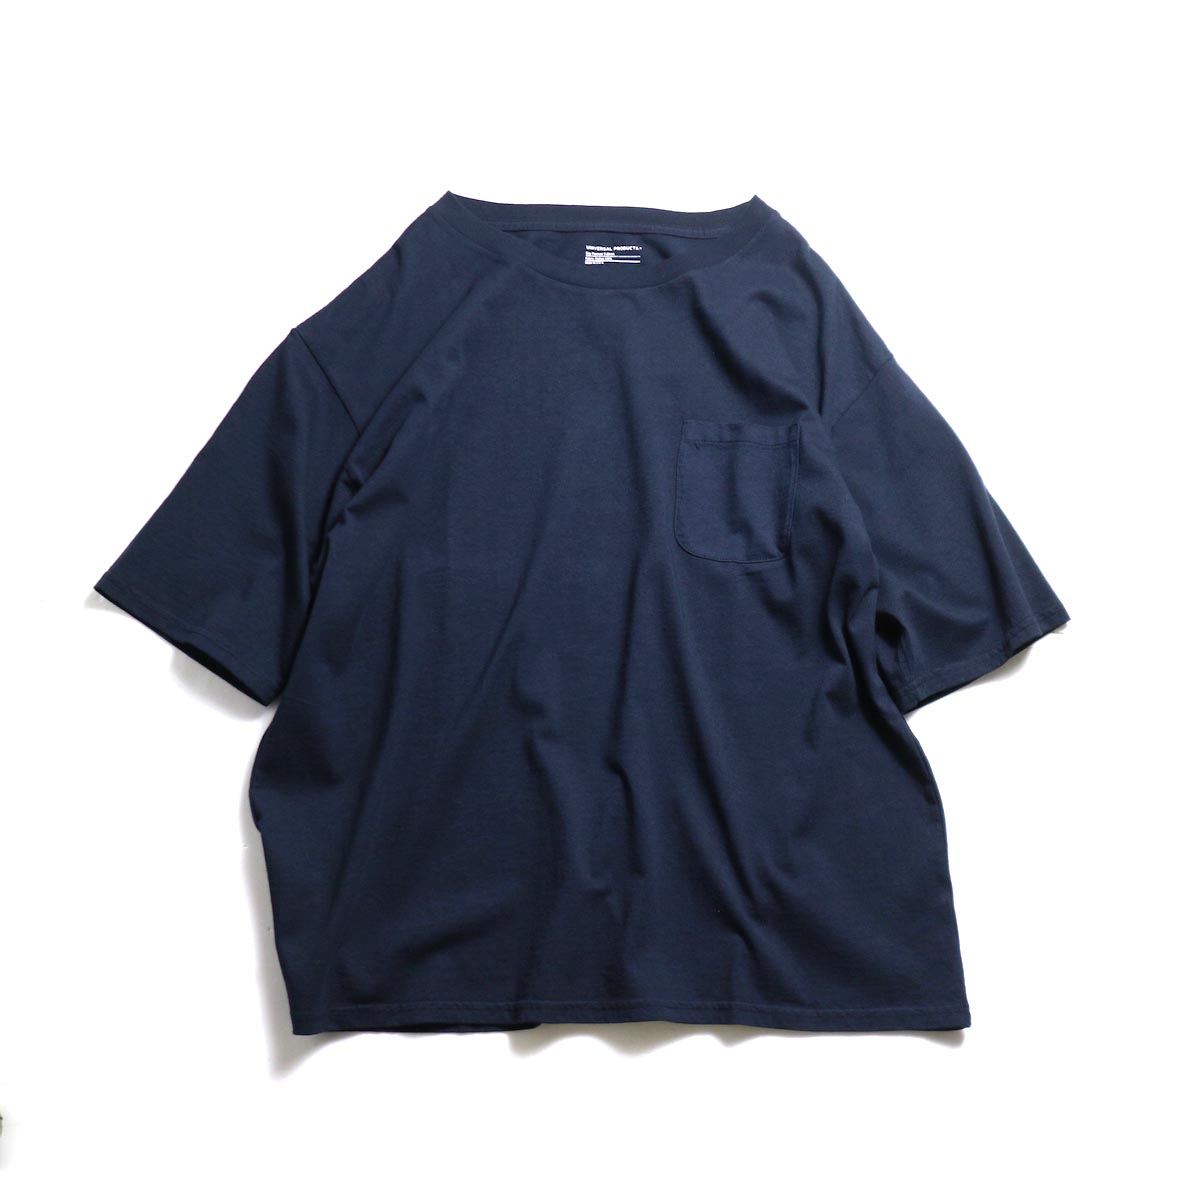 UNIVERSAL PRODUCTS / Heavy Weight S/S T-Shirt -Navy